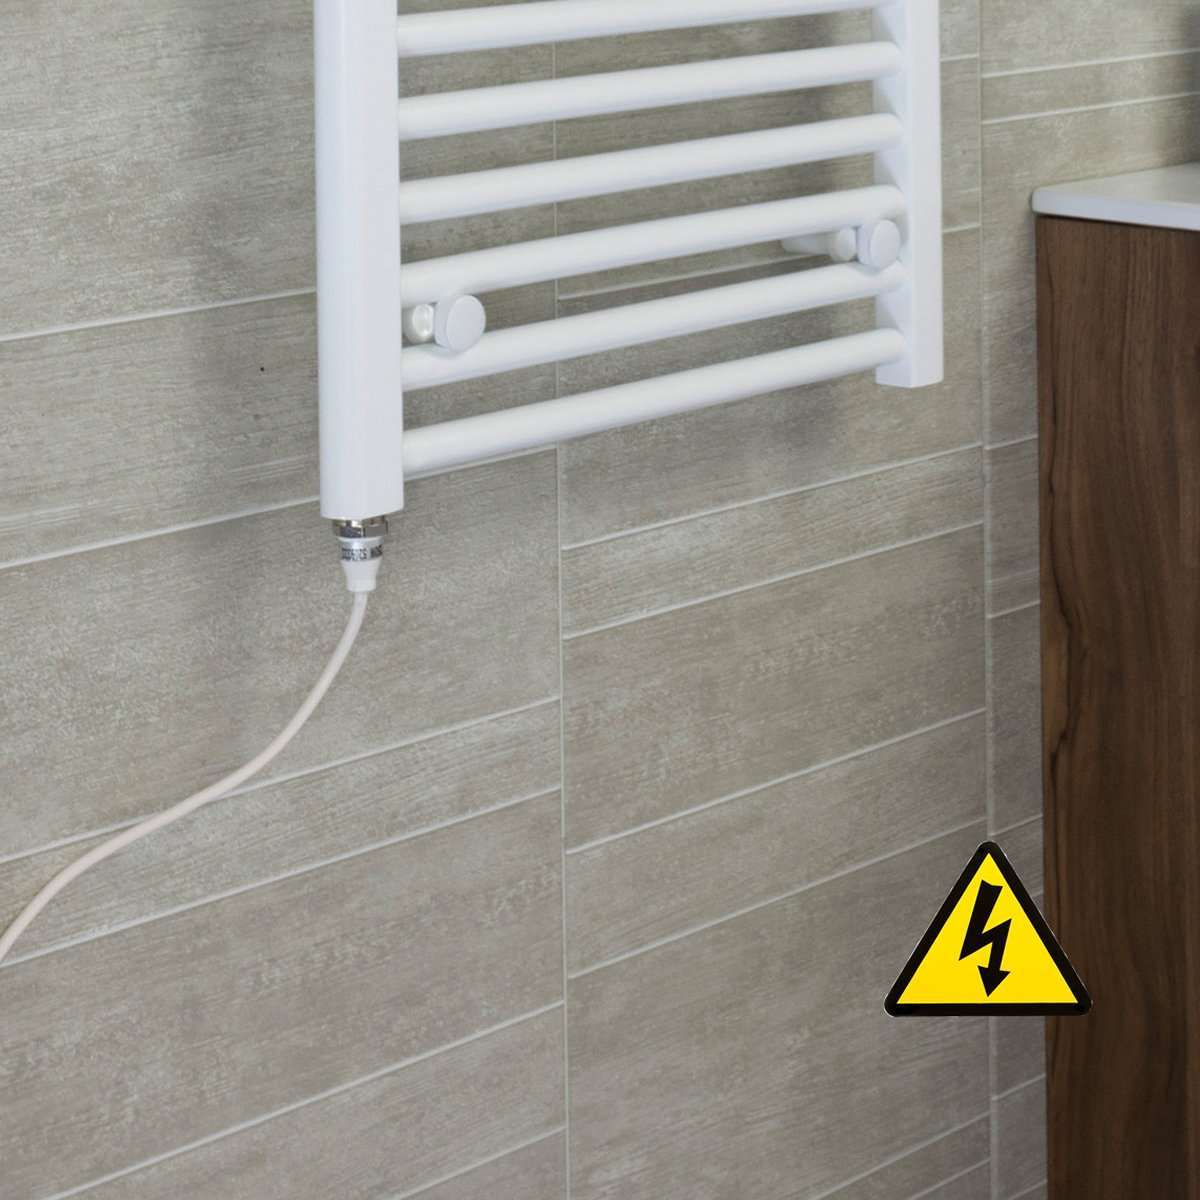 450mm Wide 900mm High Curved White Heated Towel Rail Radiator Gas or Electric,Pre-Filled Single Heat Element